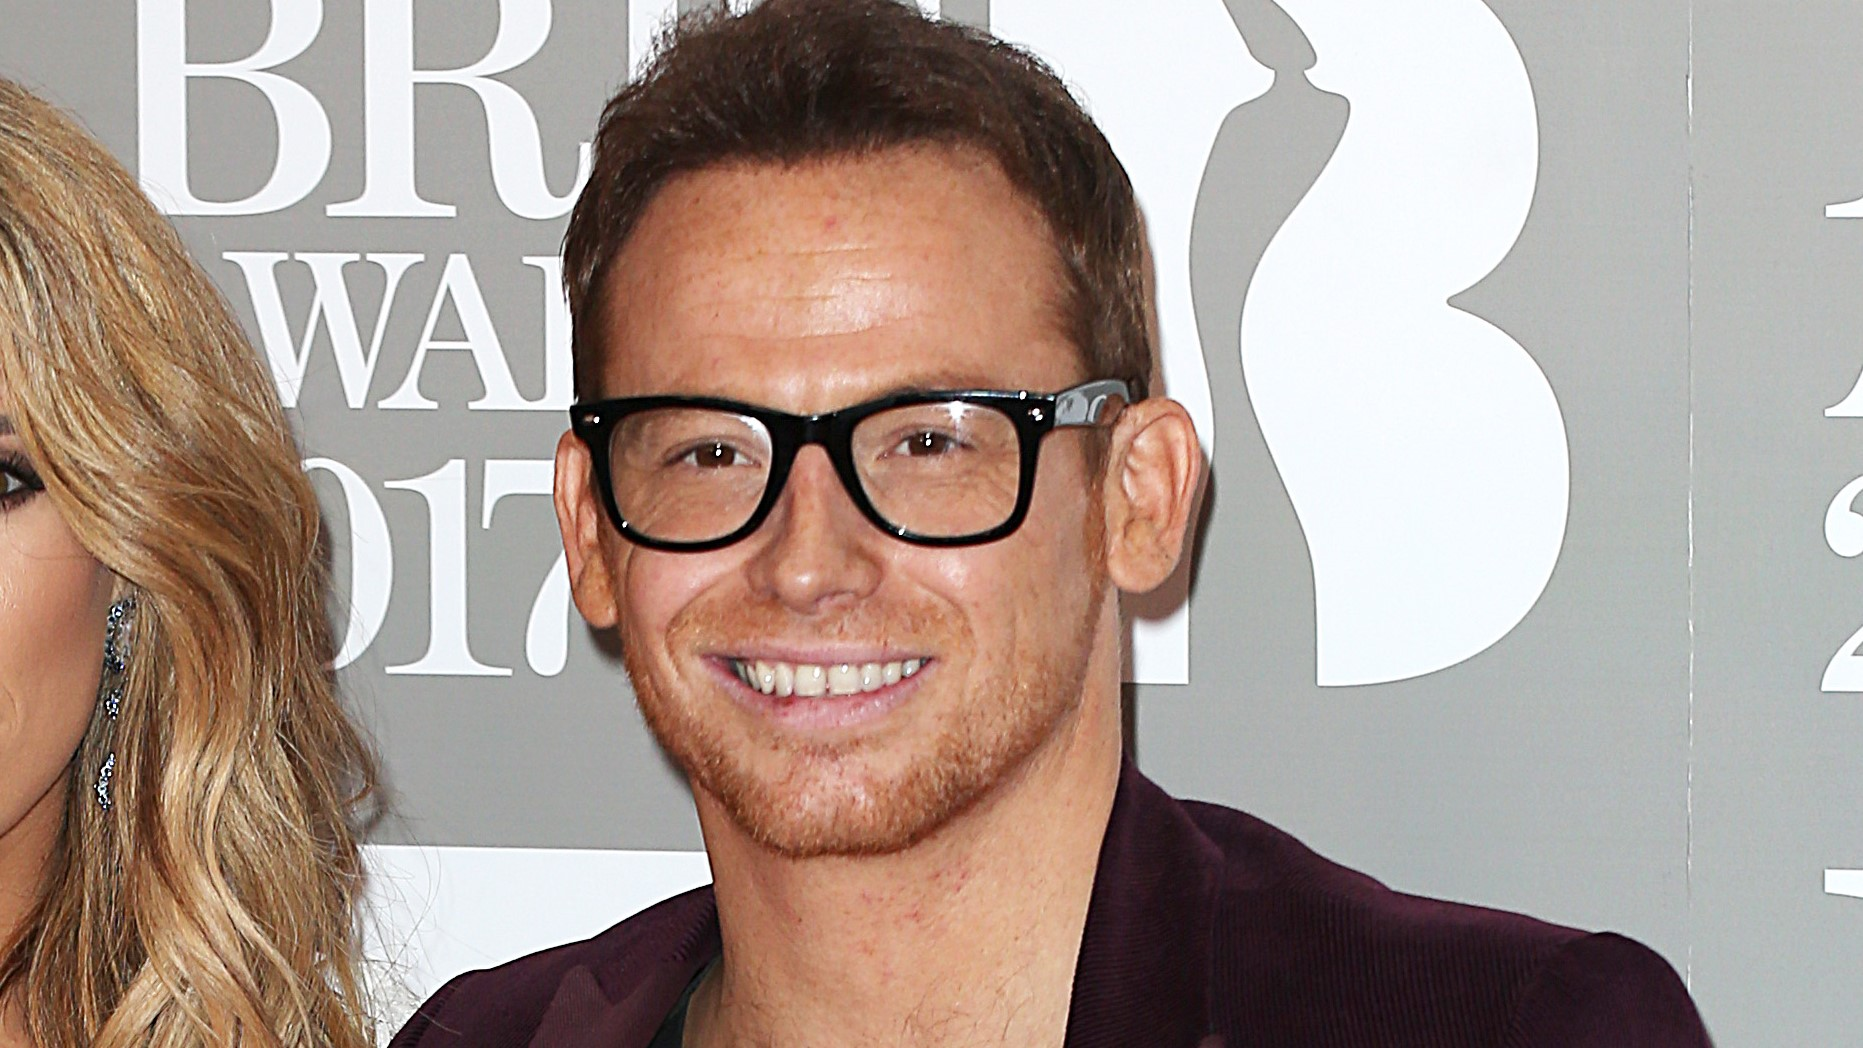 Joe Swash slammed over 'dangerous' video of son Harry on holiday